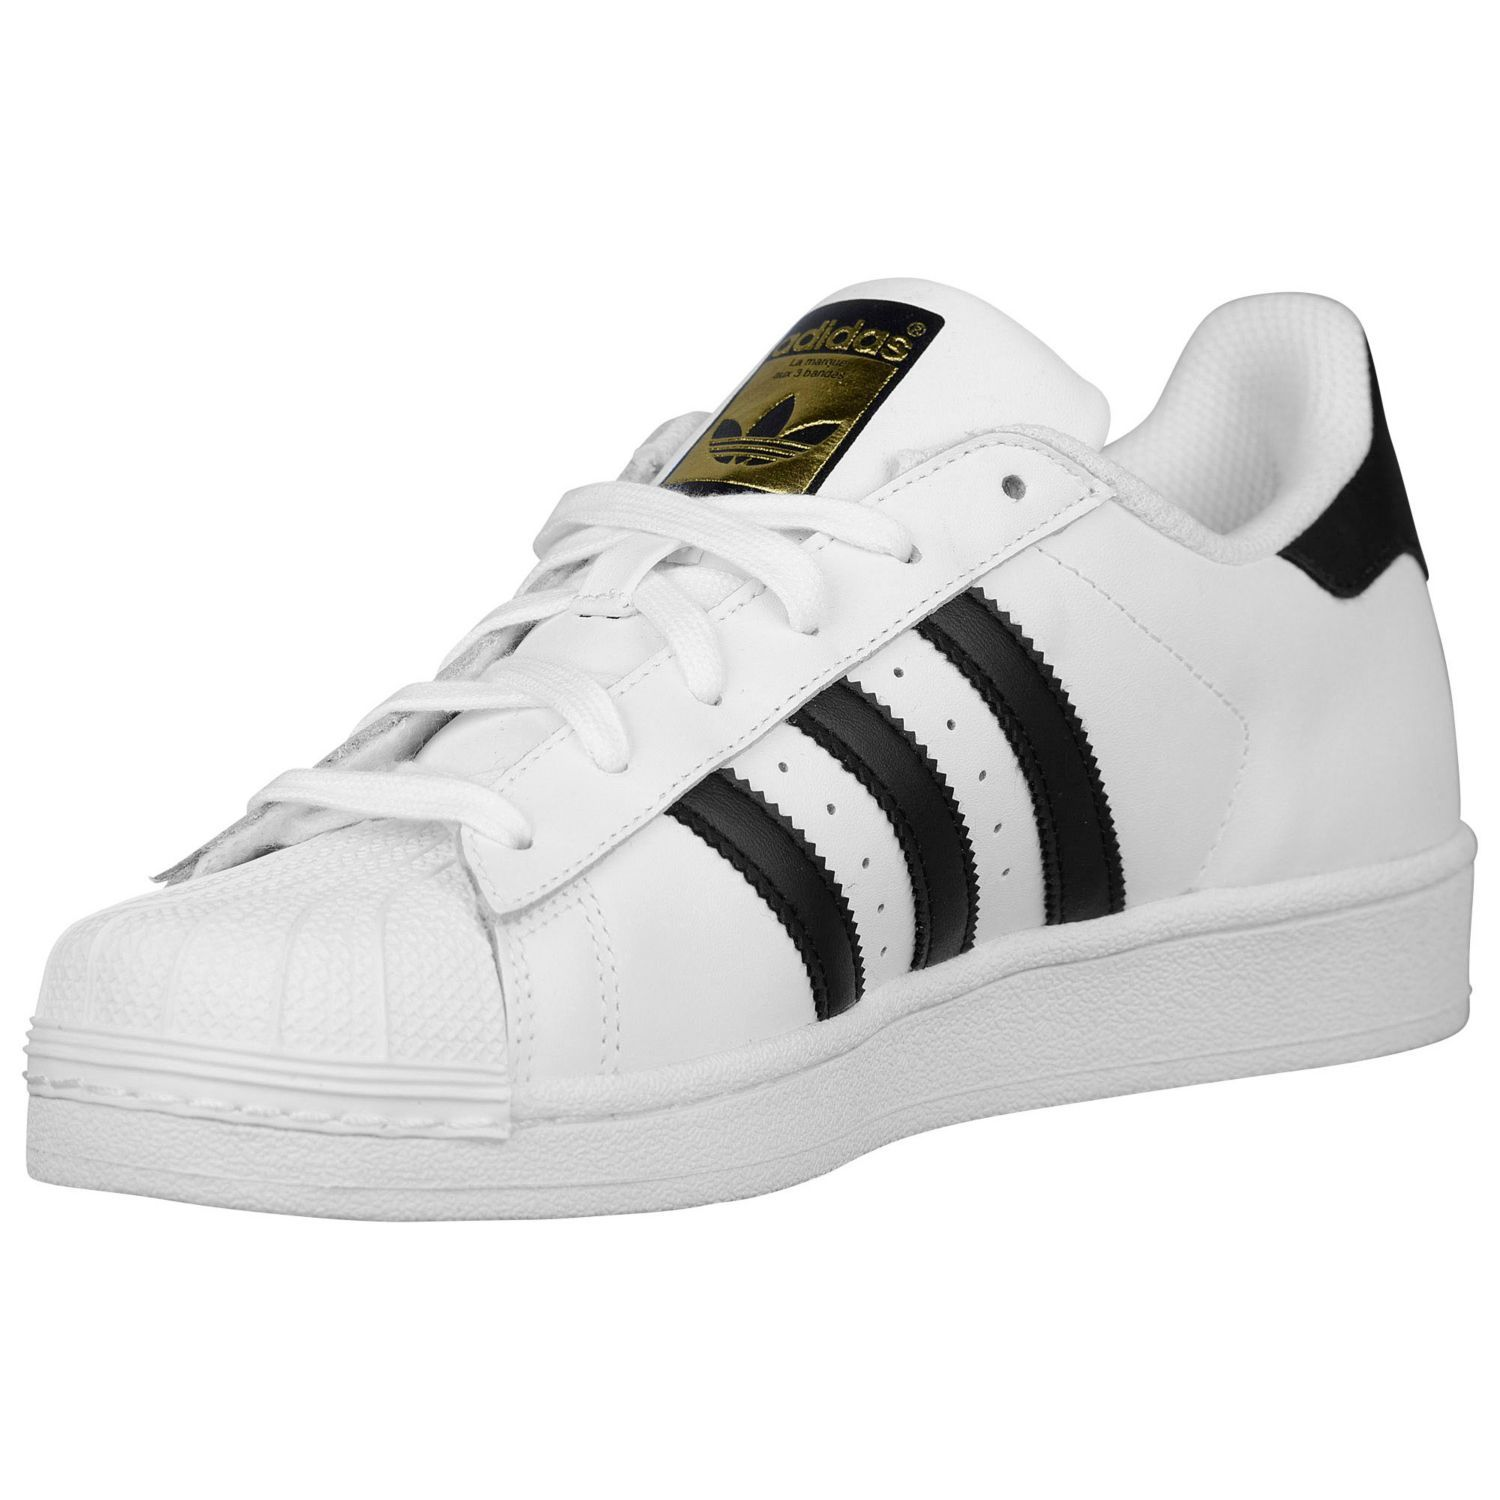 adidas Originals Superstar - Women\u0027s - Basketball - Shoes -  White/Black/White